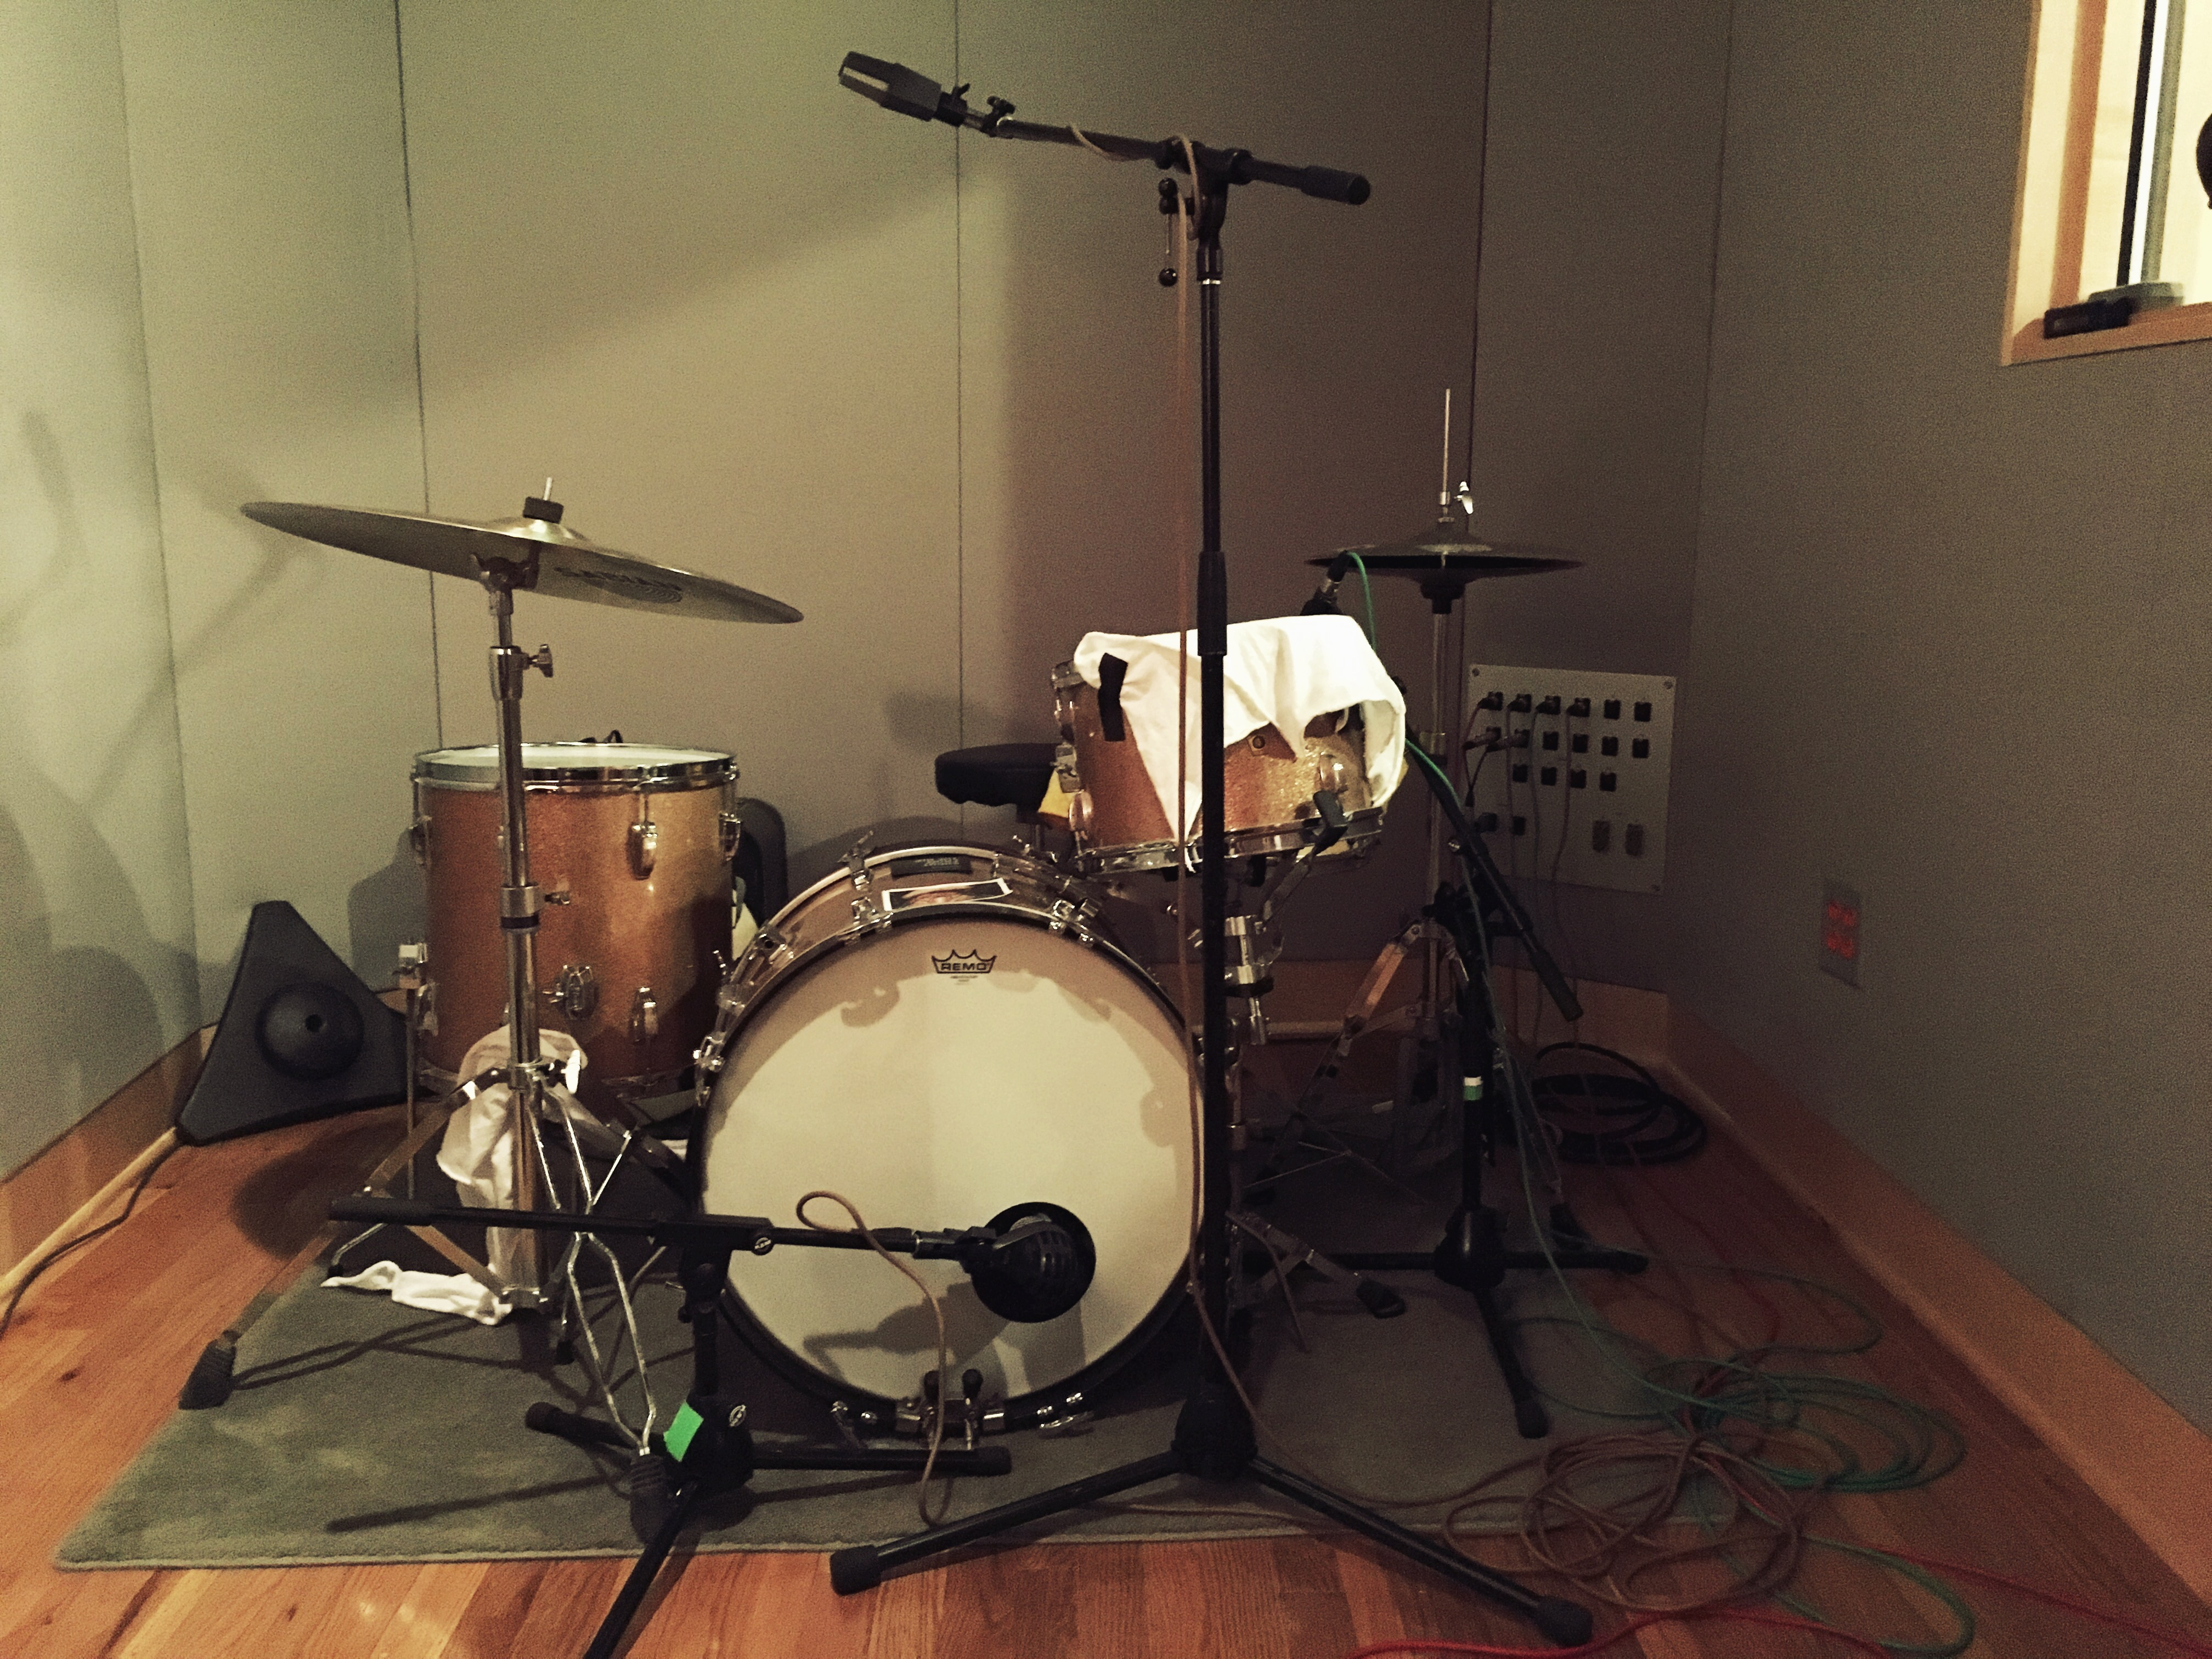 Gretsch Drums in studio B